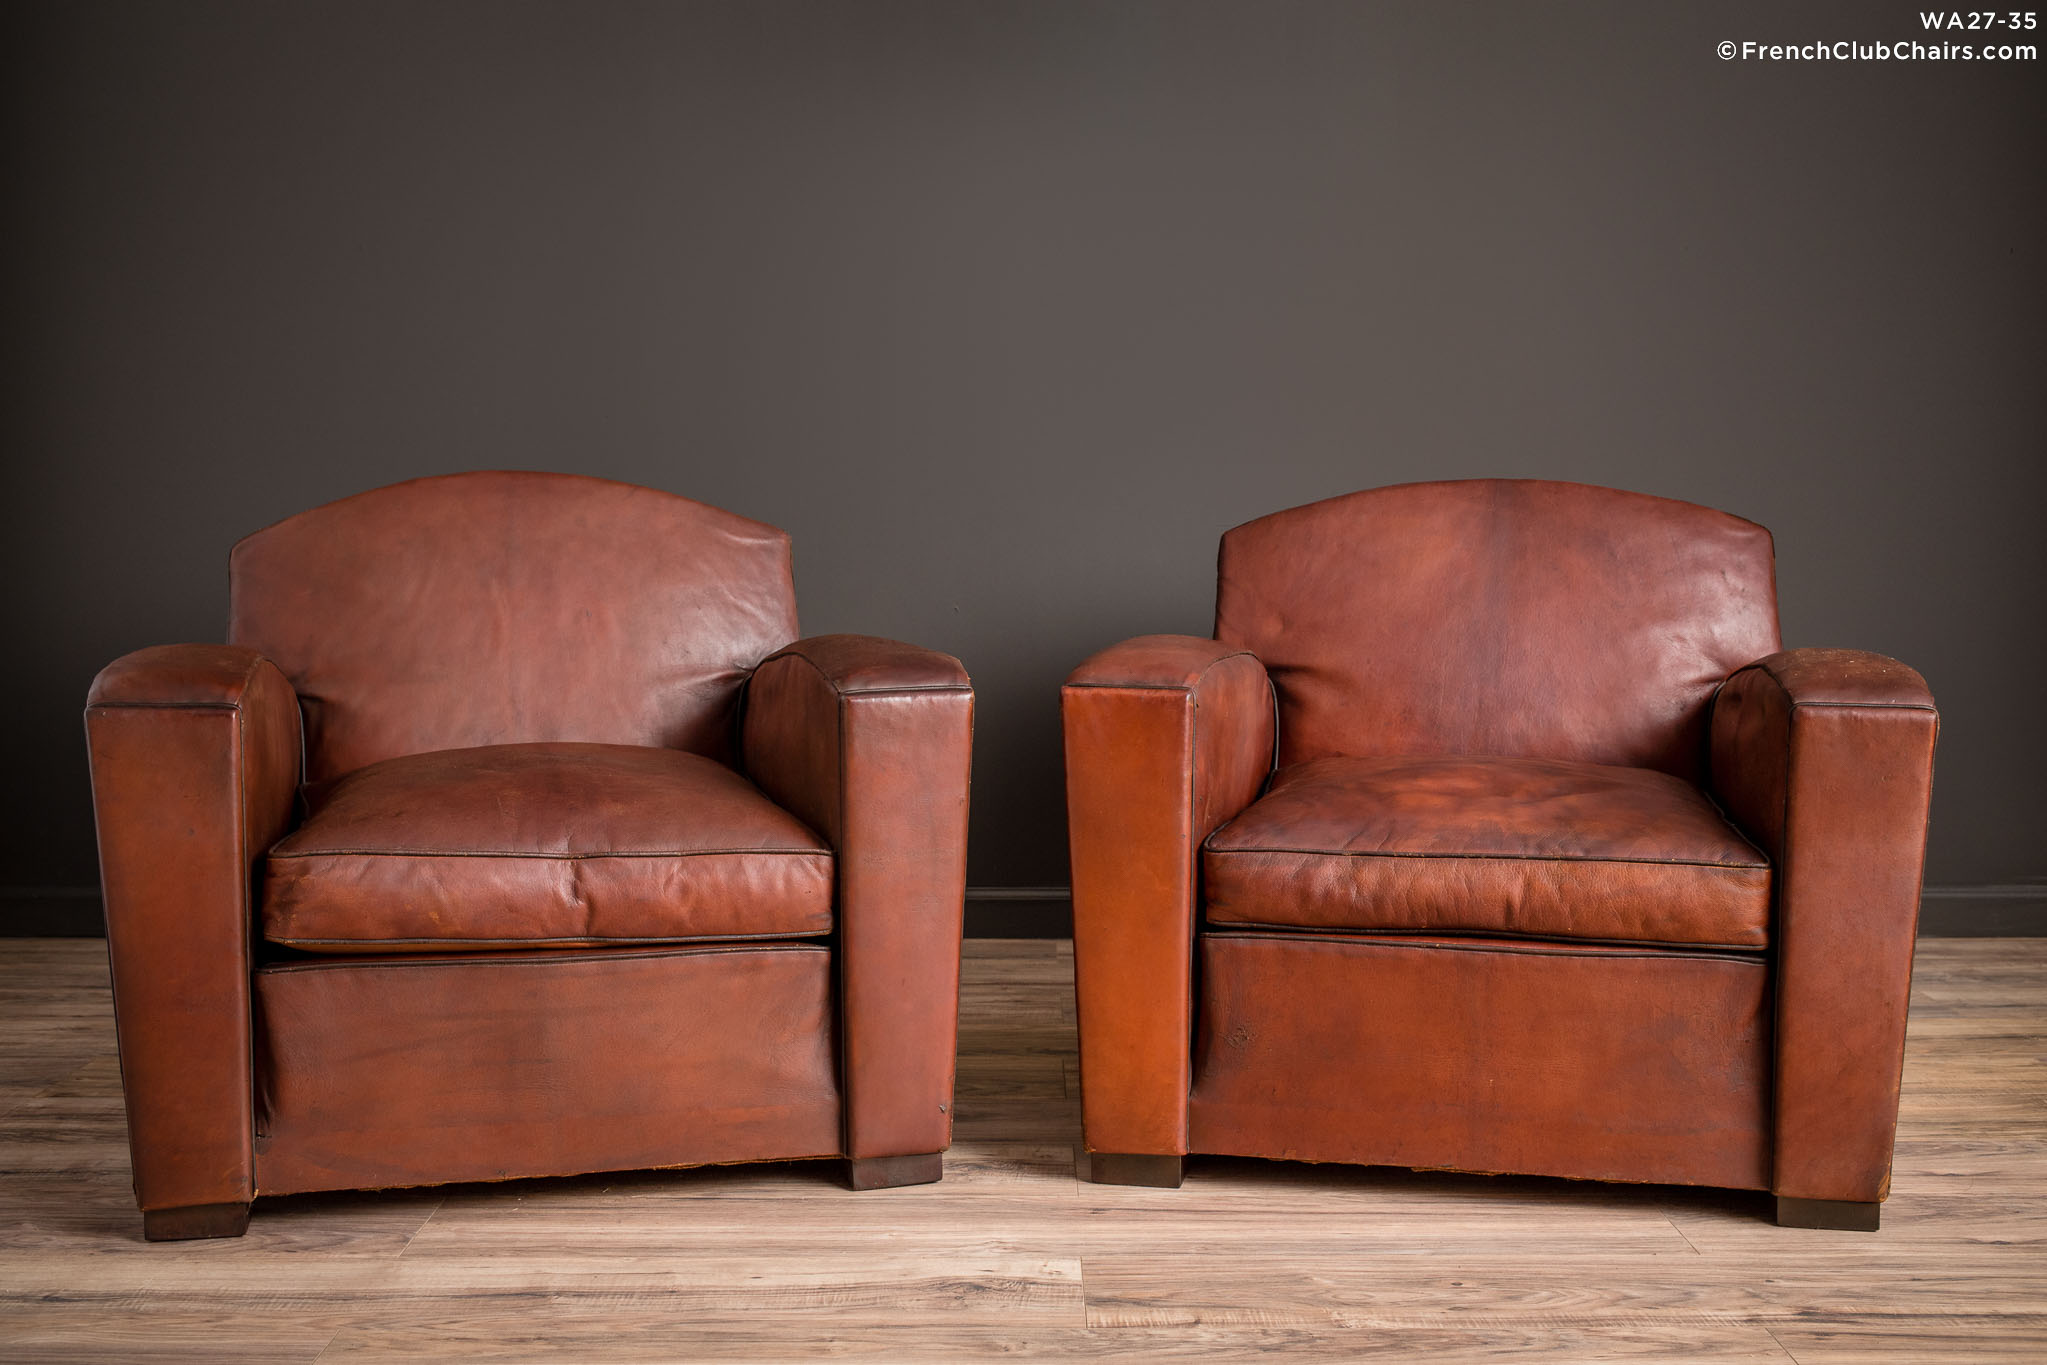 WA_27-35_Cinema_Dark_Lounge_Pair_R_1TQ-v01-williams-antiks-leather-french-club-chair-wa_fcccom